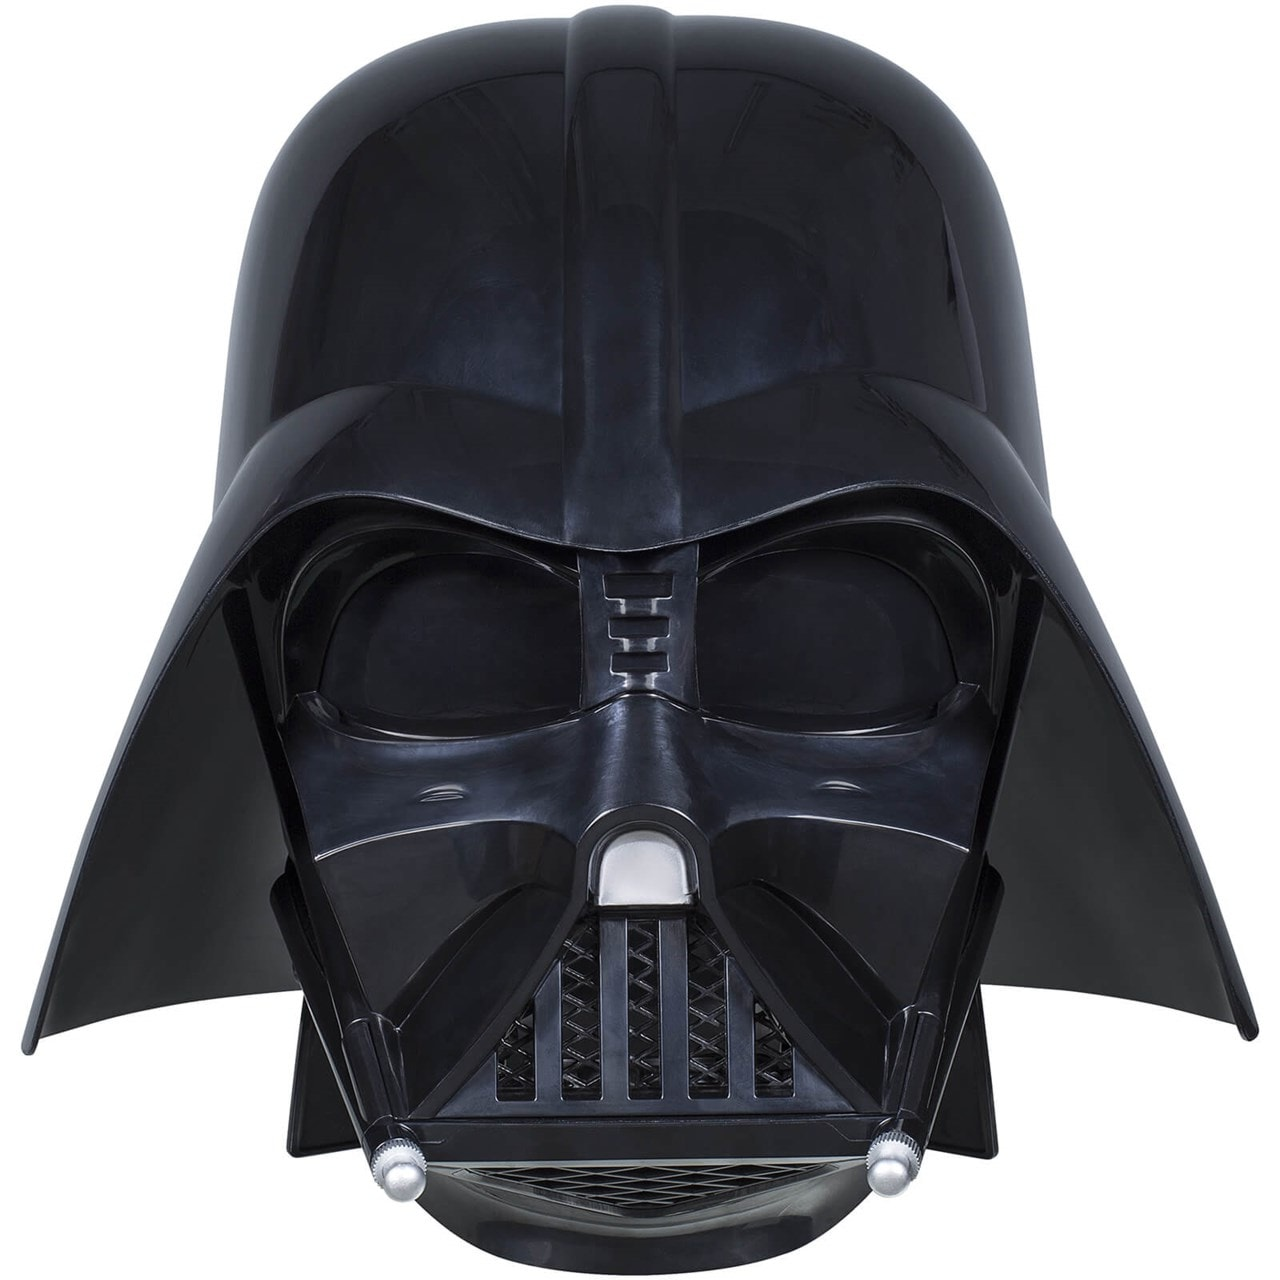 Darth Vader Electronic Helmet: Star Wars Black Series - 5